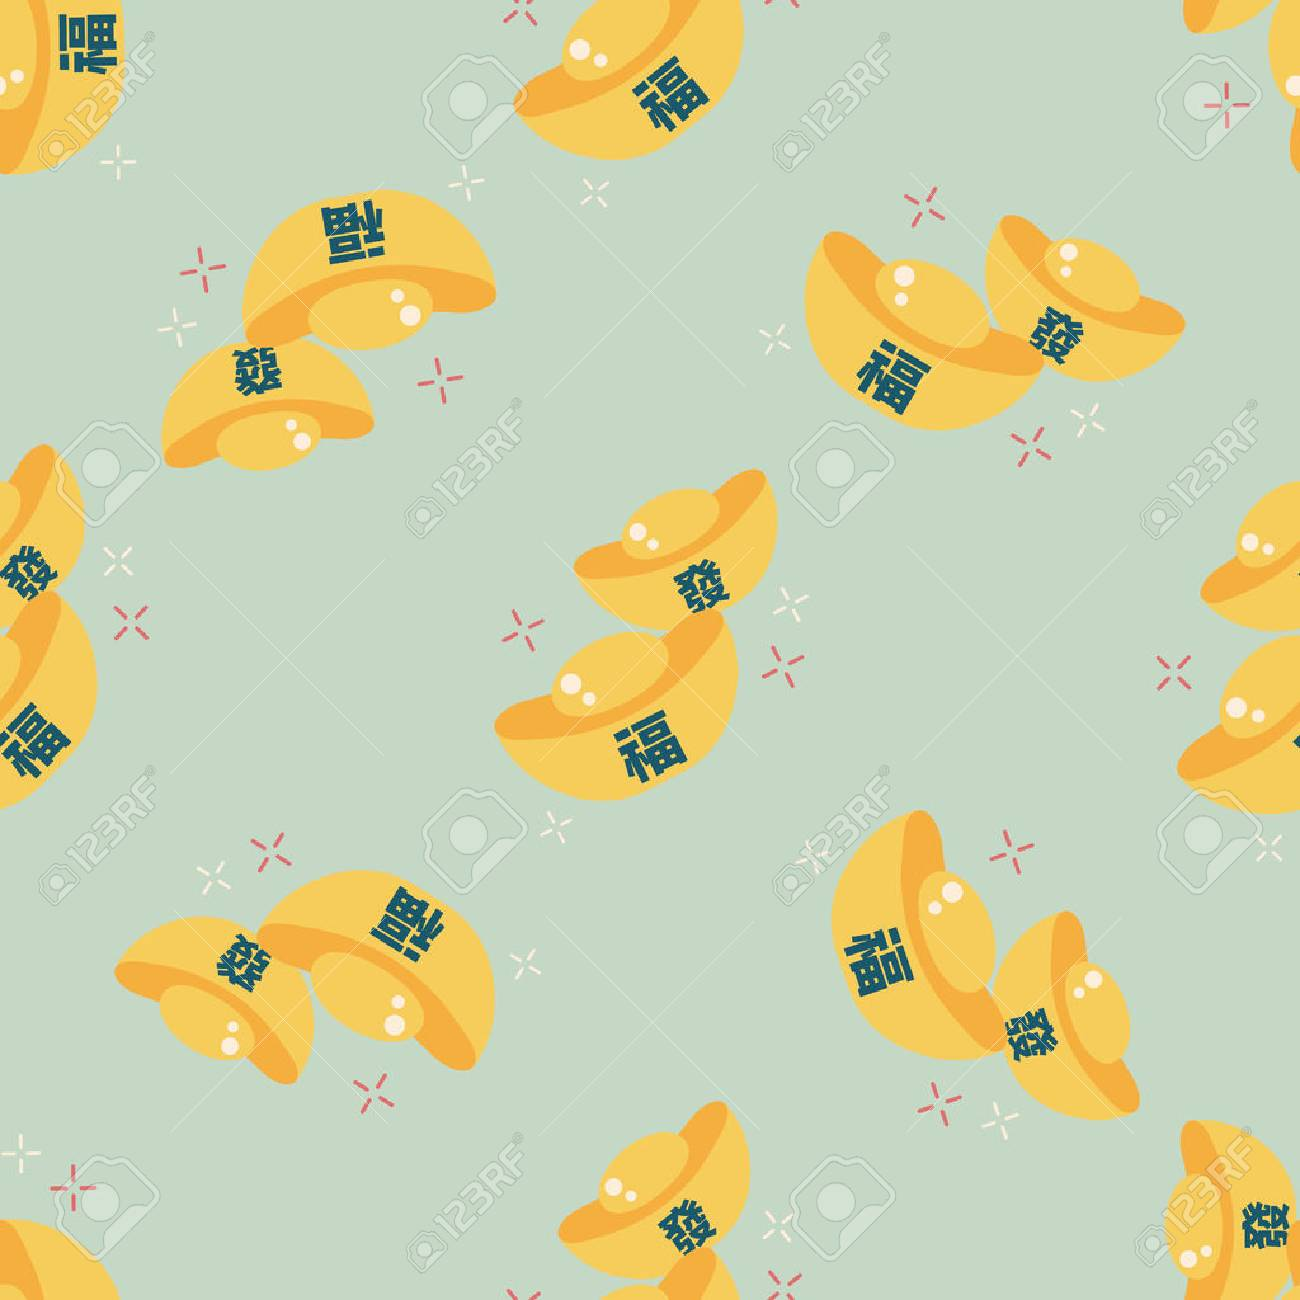 """Chinese New Year flat icon with long shadow,eps10, Gold ingot with Chinese words means """" wish good luck."""" - 39092862"""